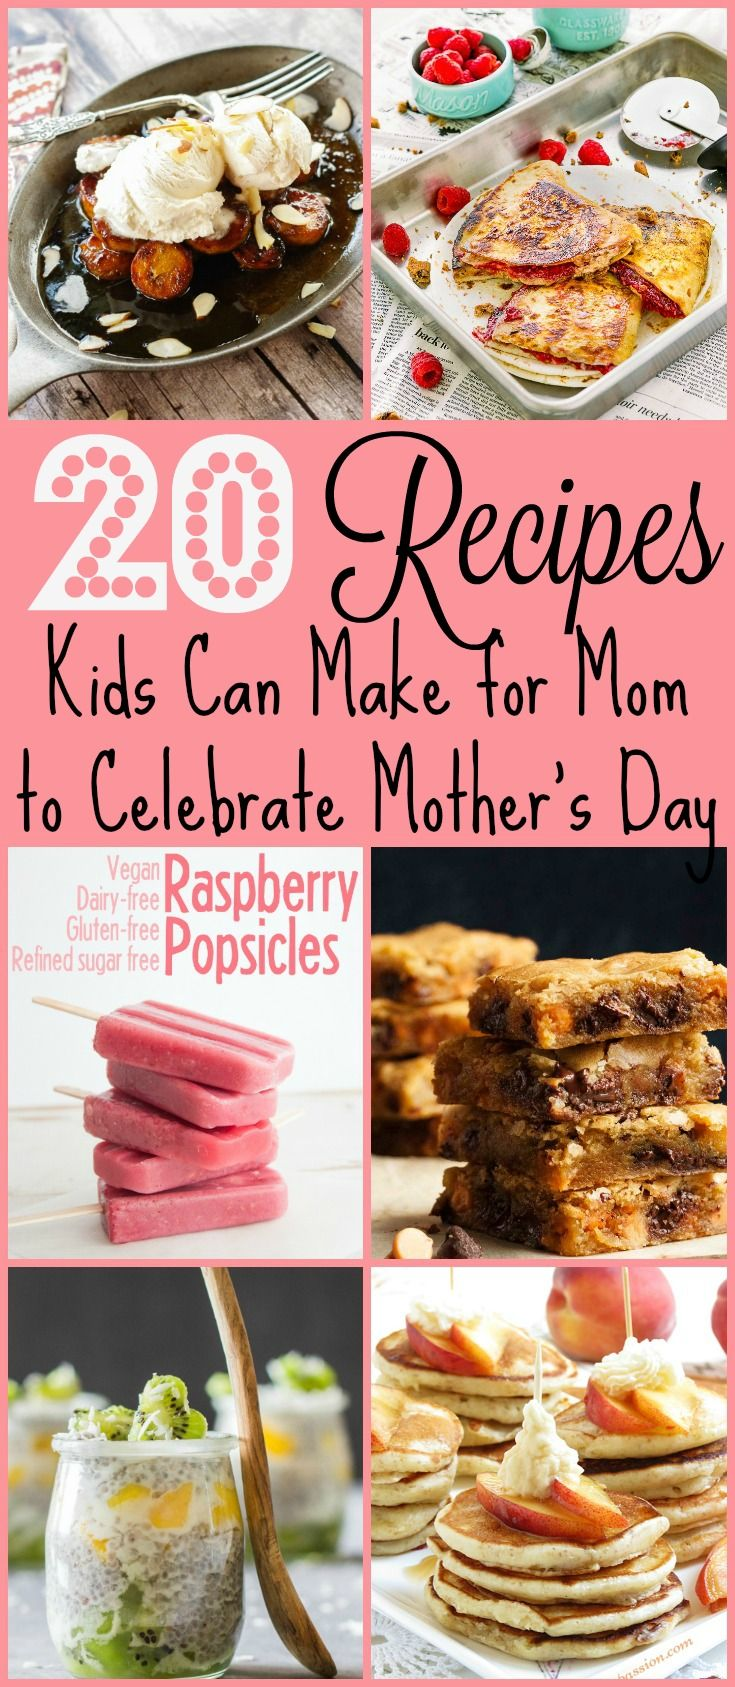 20 Recipes Kids Can Make for Mom to Celebrate Mother's Day   www.homeandplate.com   Get your kiddos involved in celebrating Mother's Day this year by presenting mom with a special recipe the kids can make all on their own.